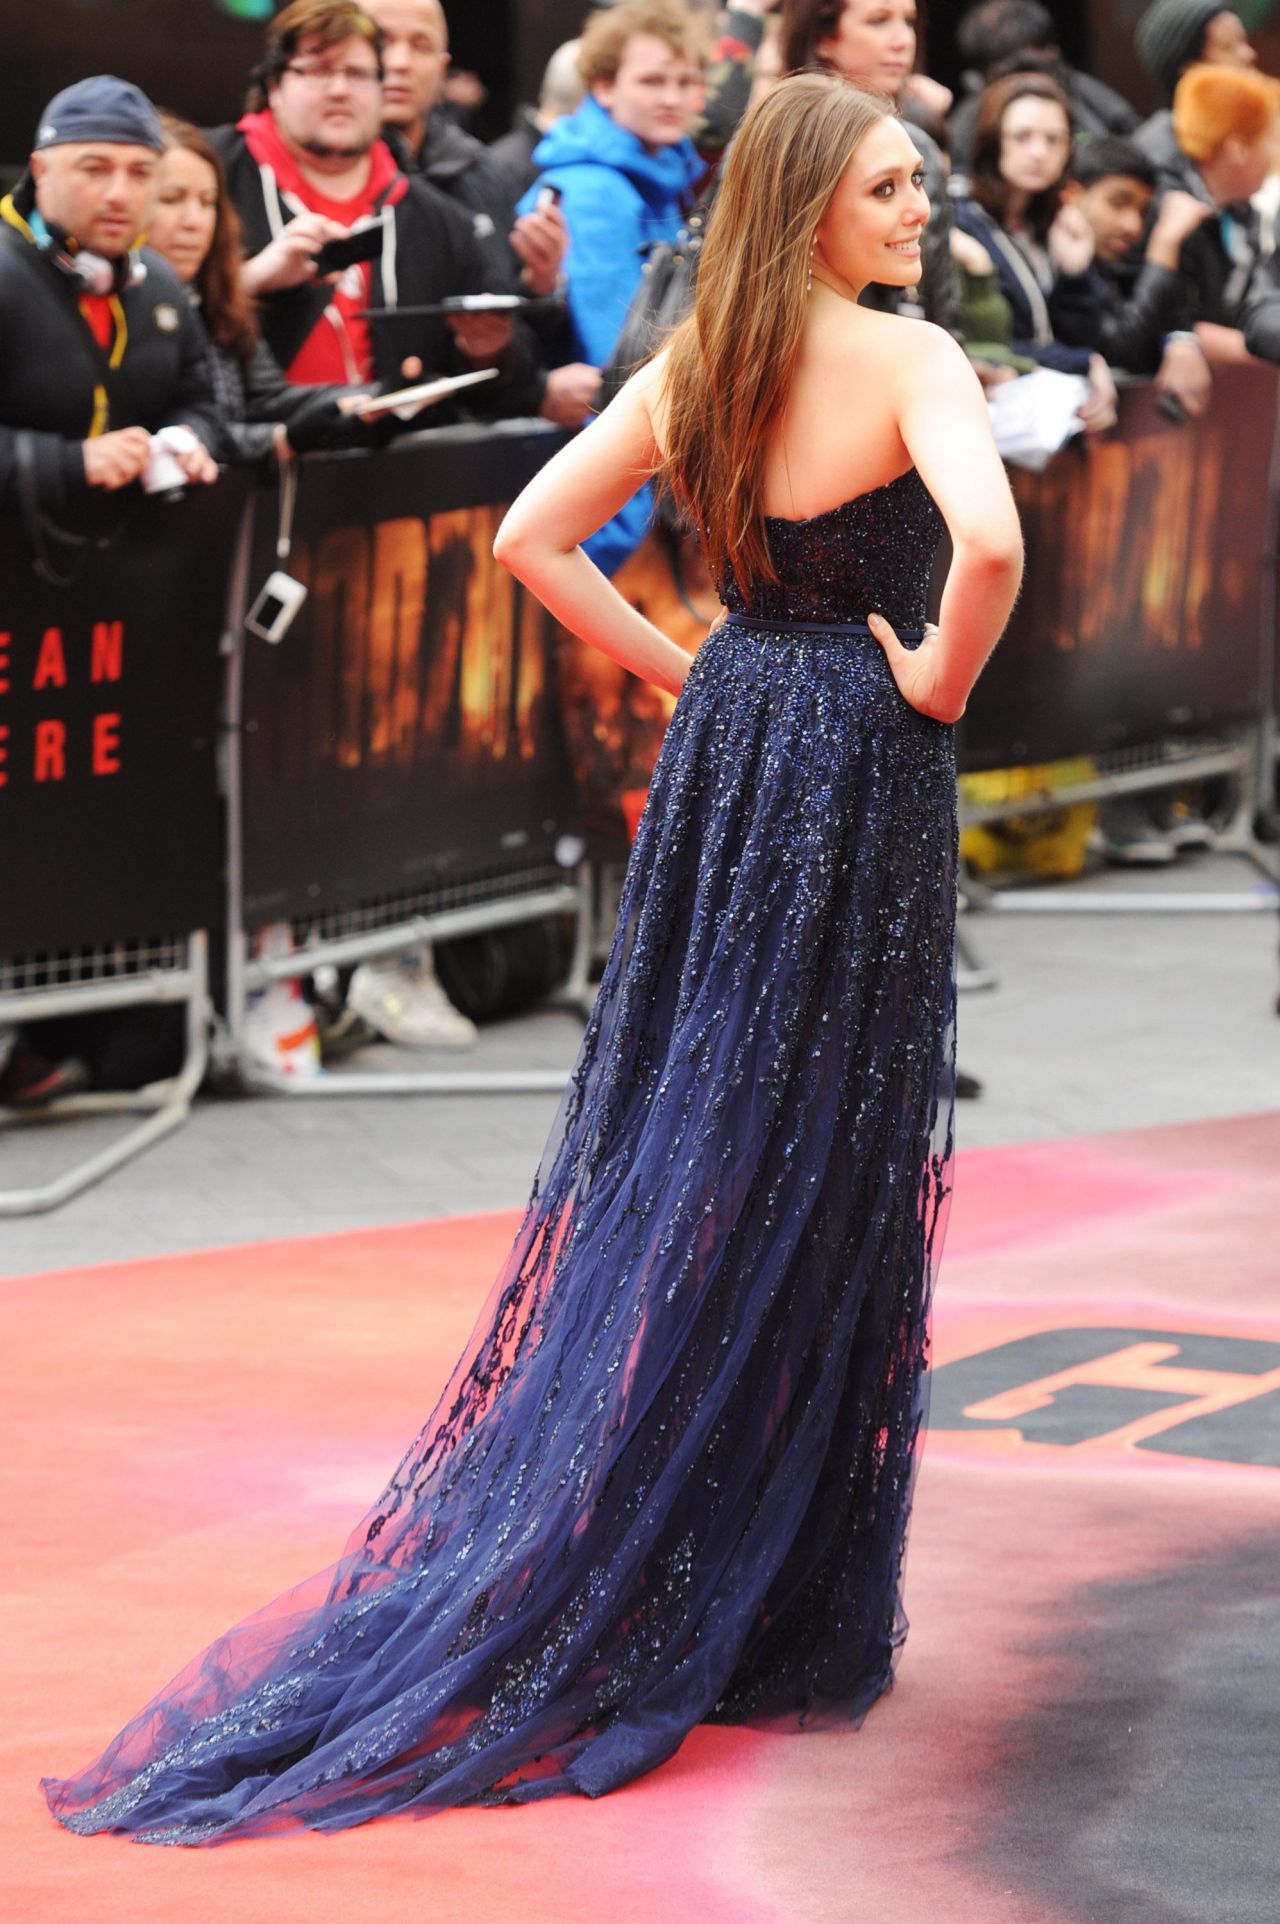 GODZILLA European Premiere in London – Elizabeth Olsen